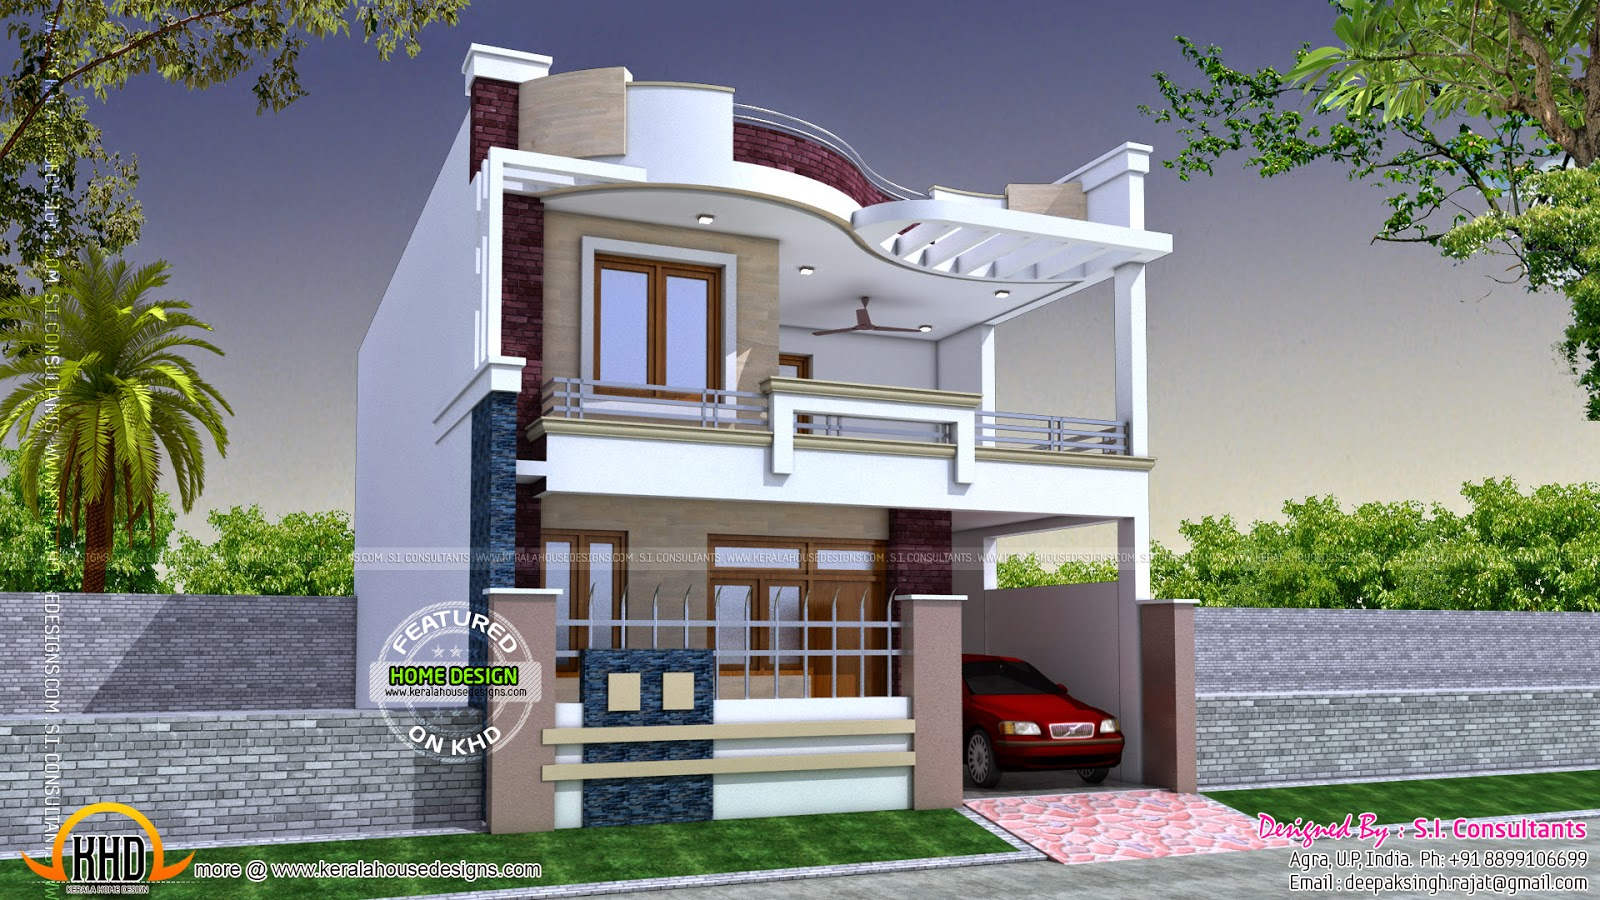 Modern indian home design kerala home design and floor plans for Modern style house plans